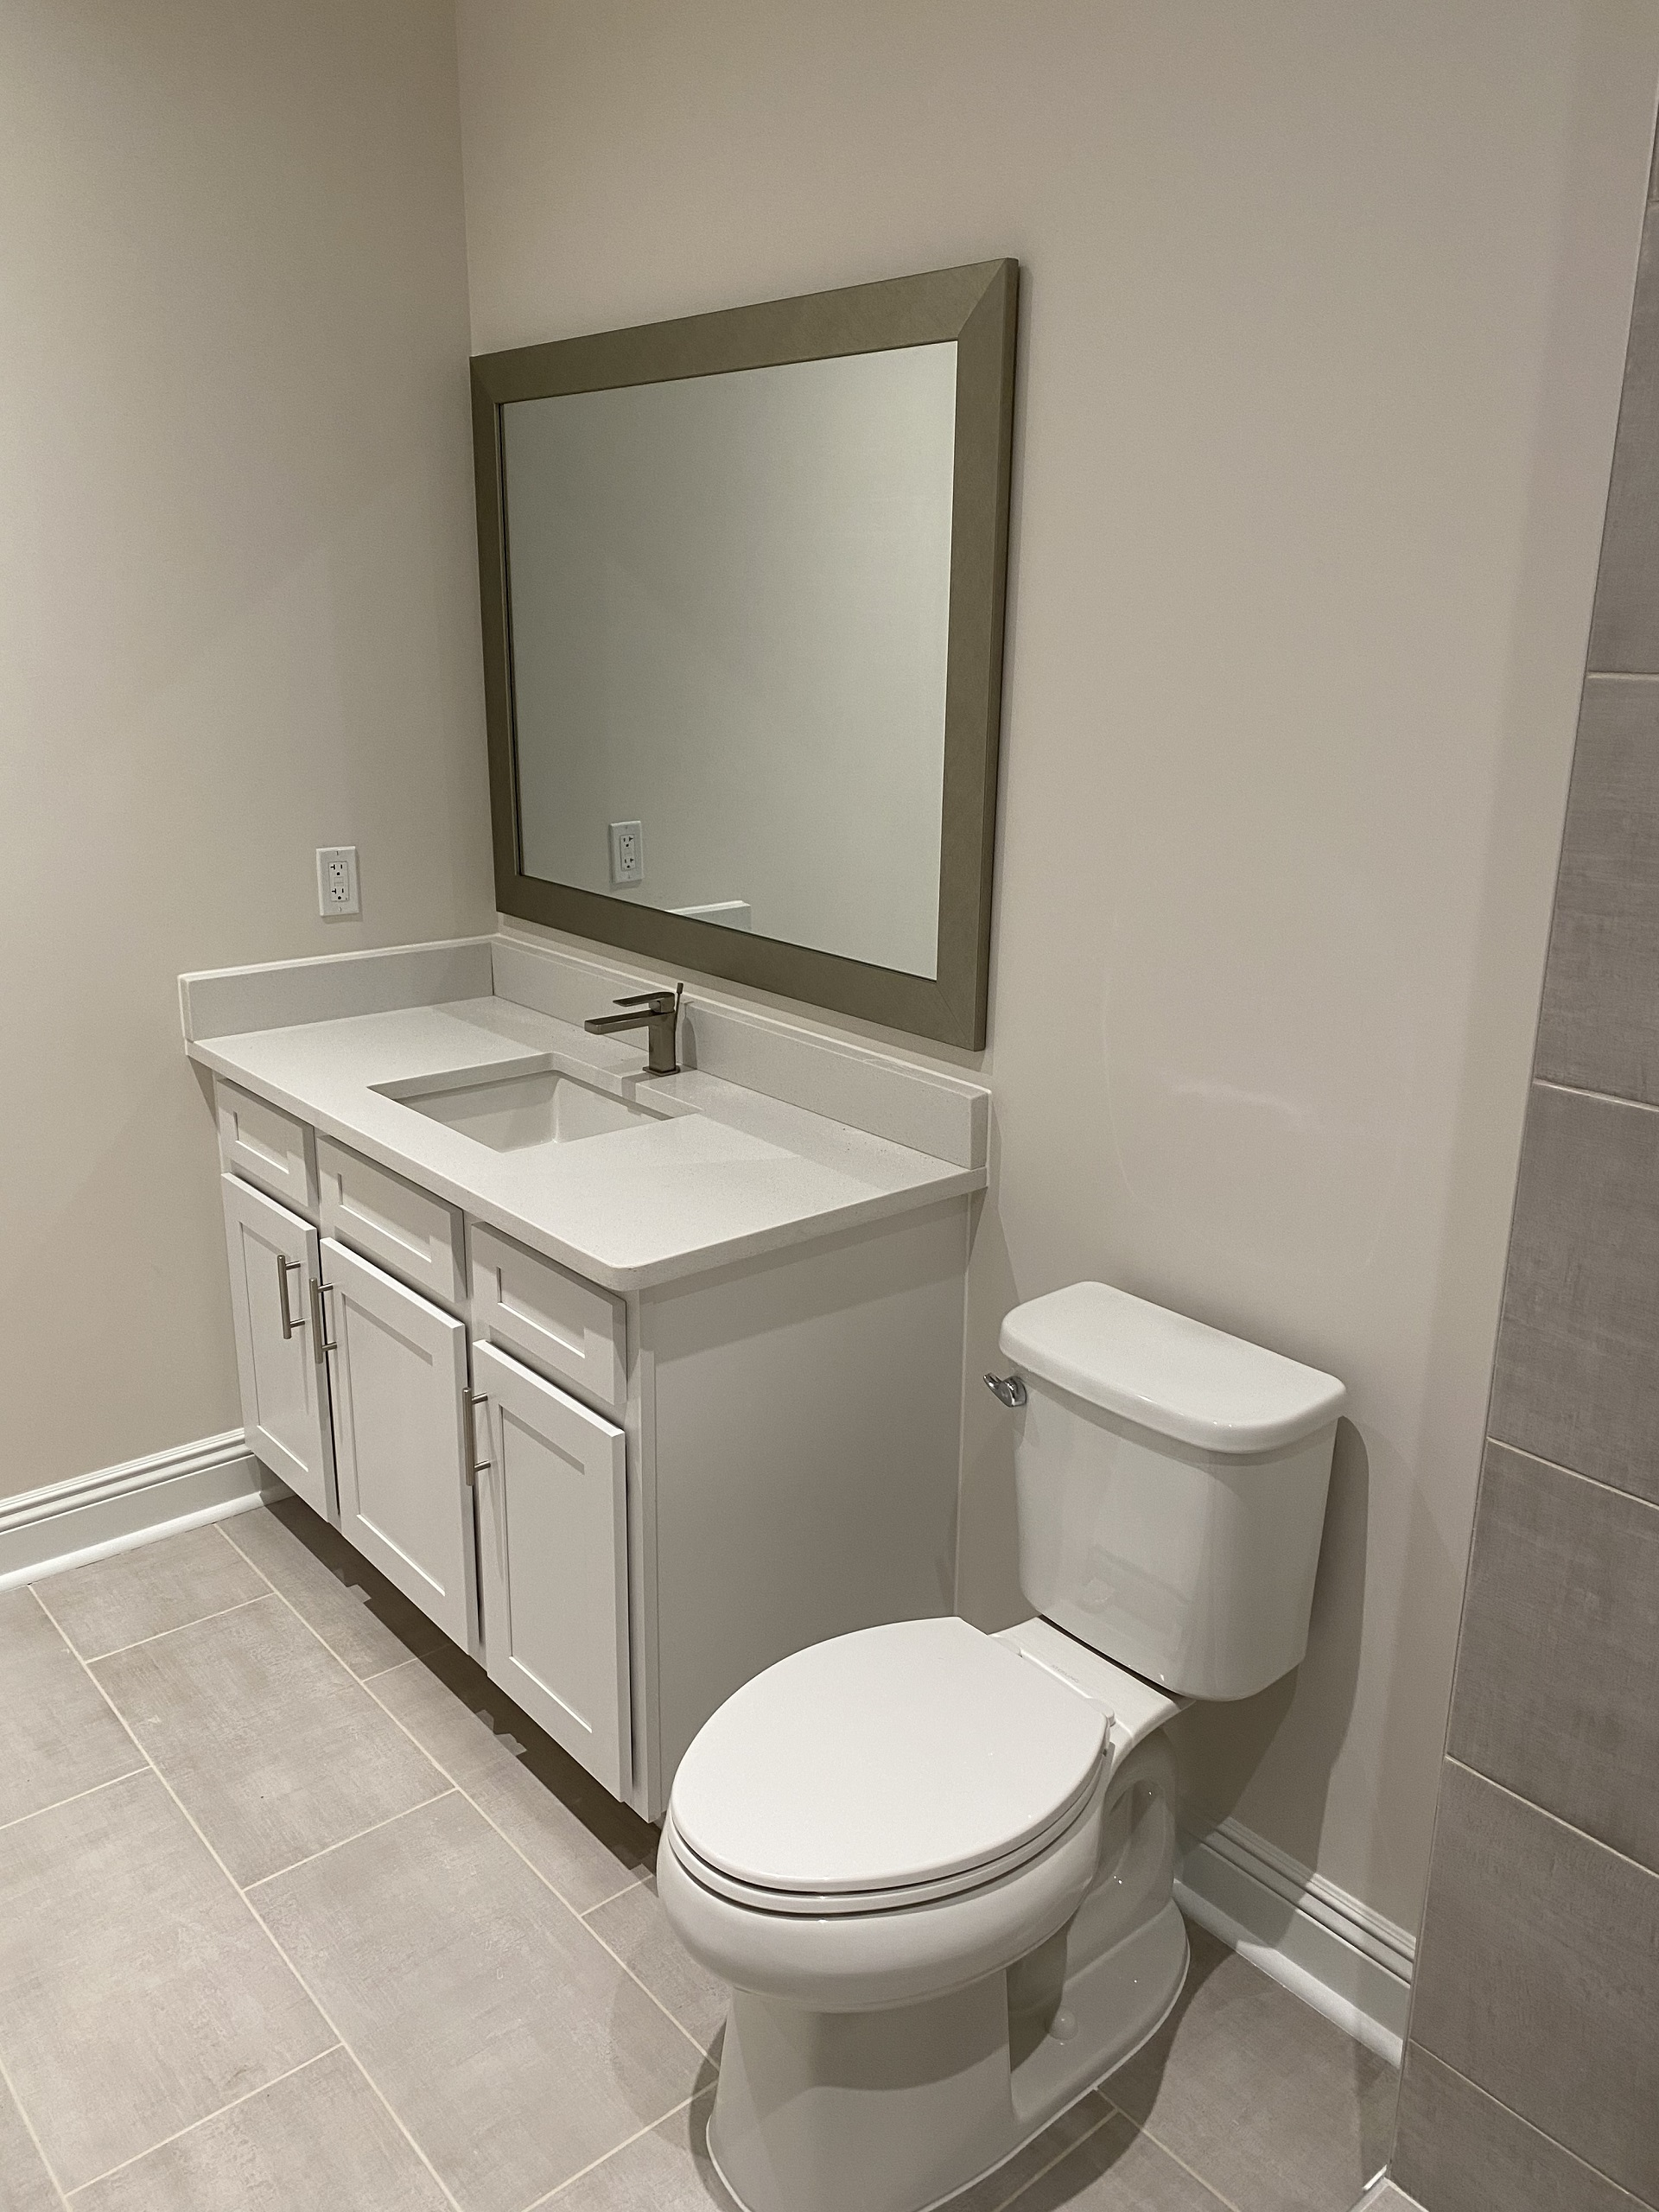 YC Model- Bathroom.jpg 2